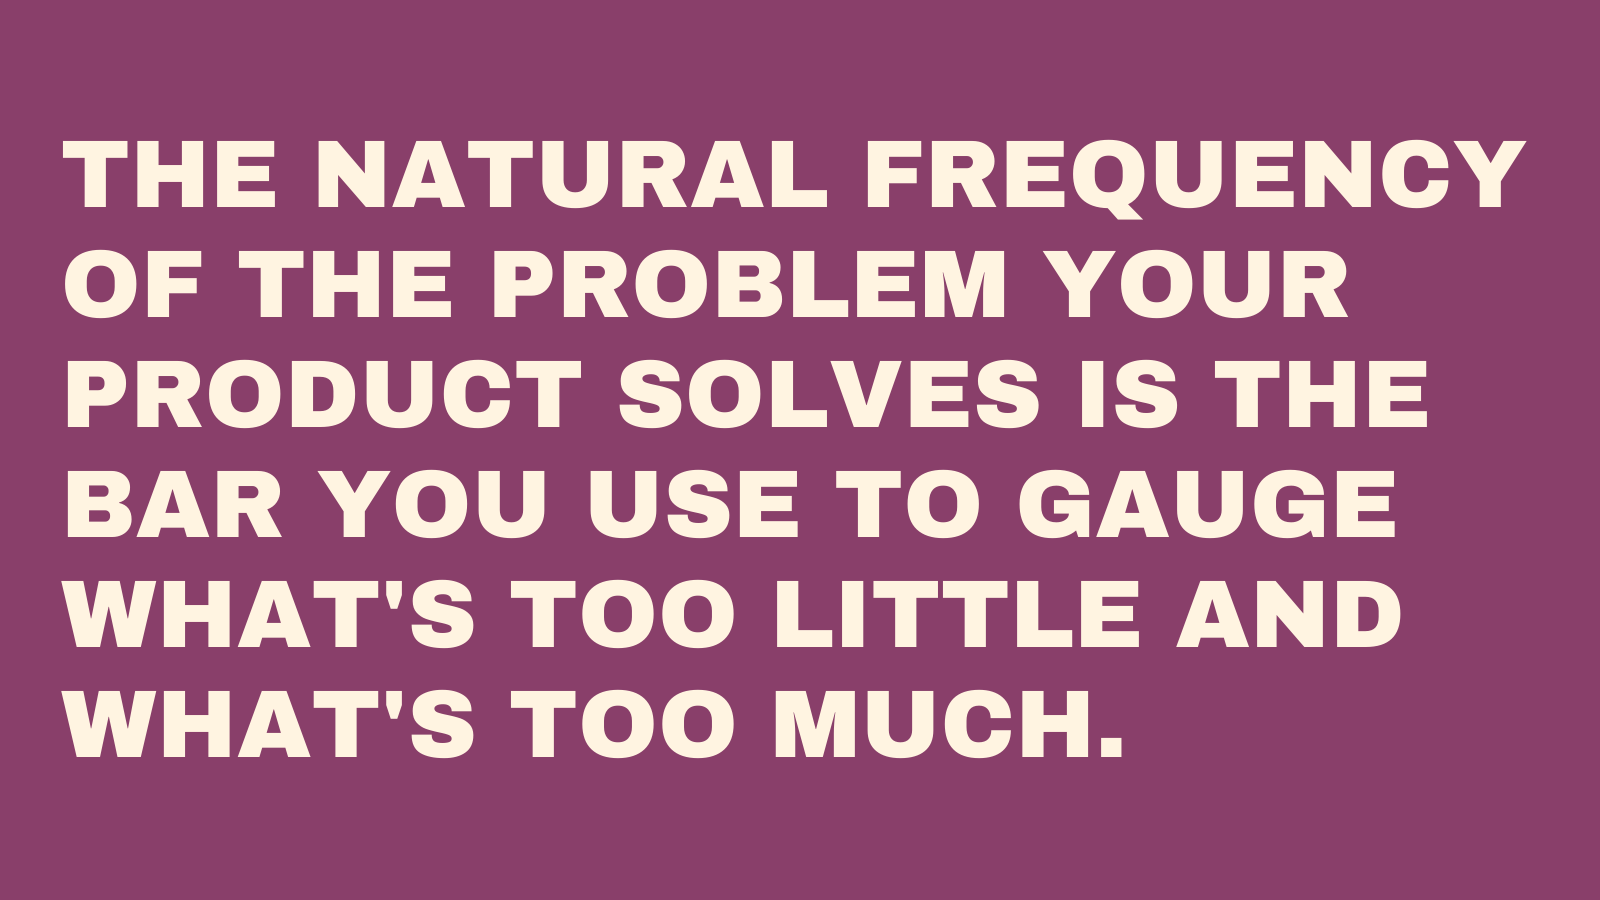 The natiral frequency of the problem